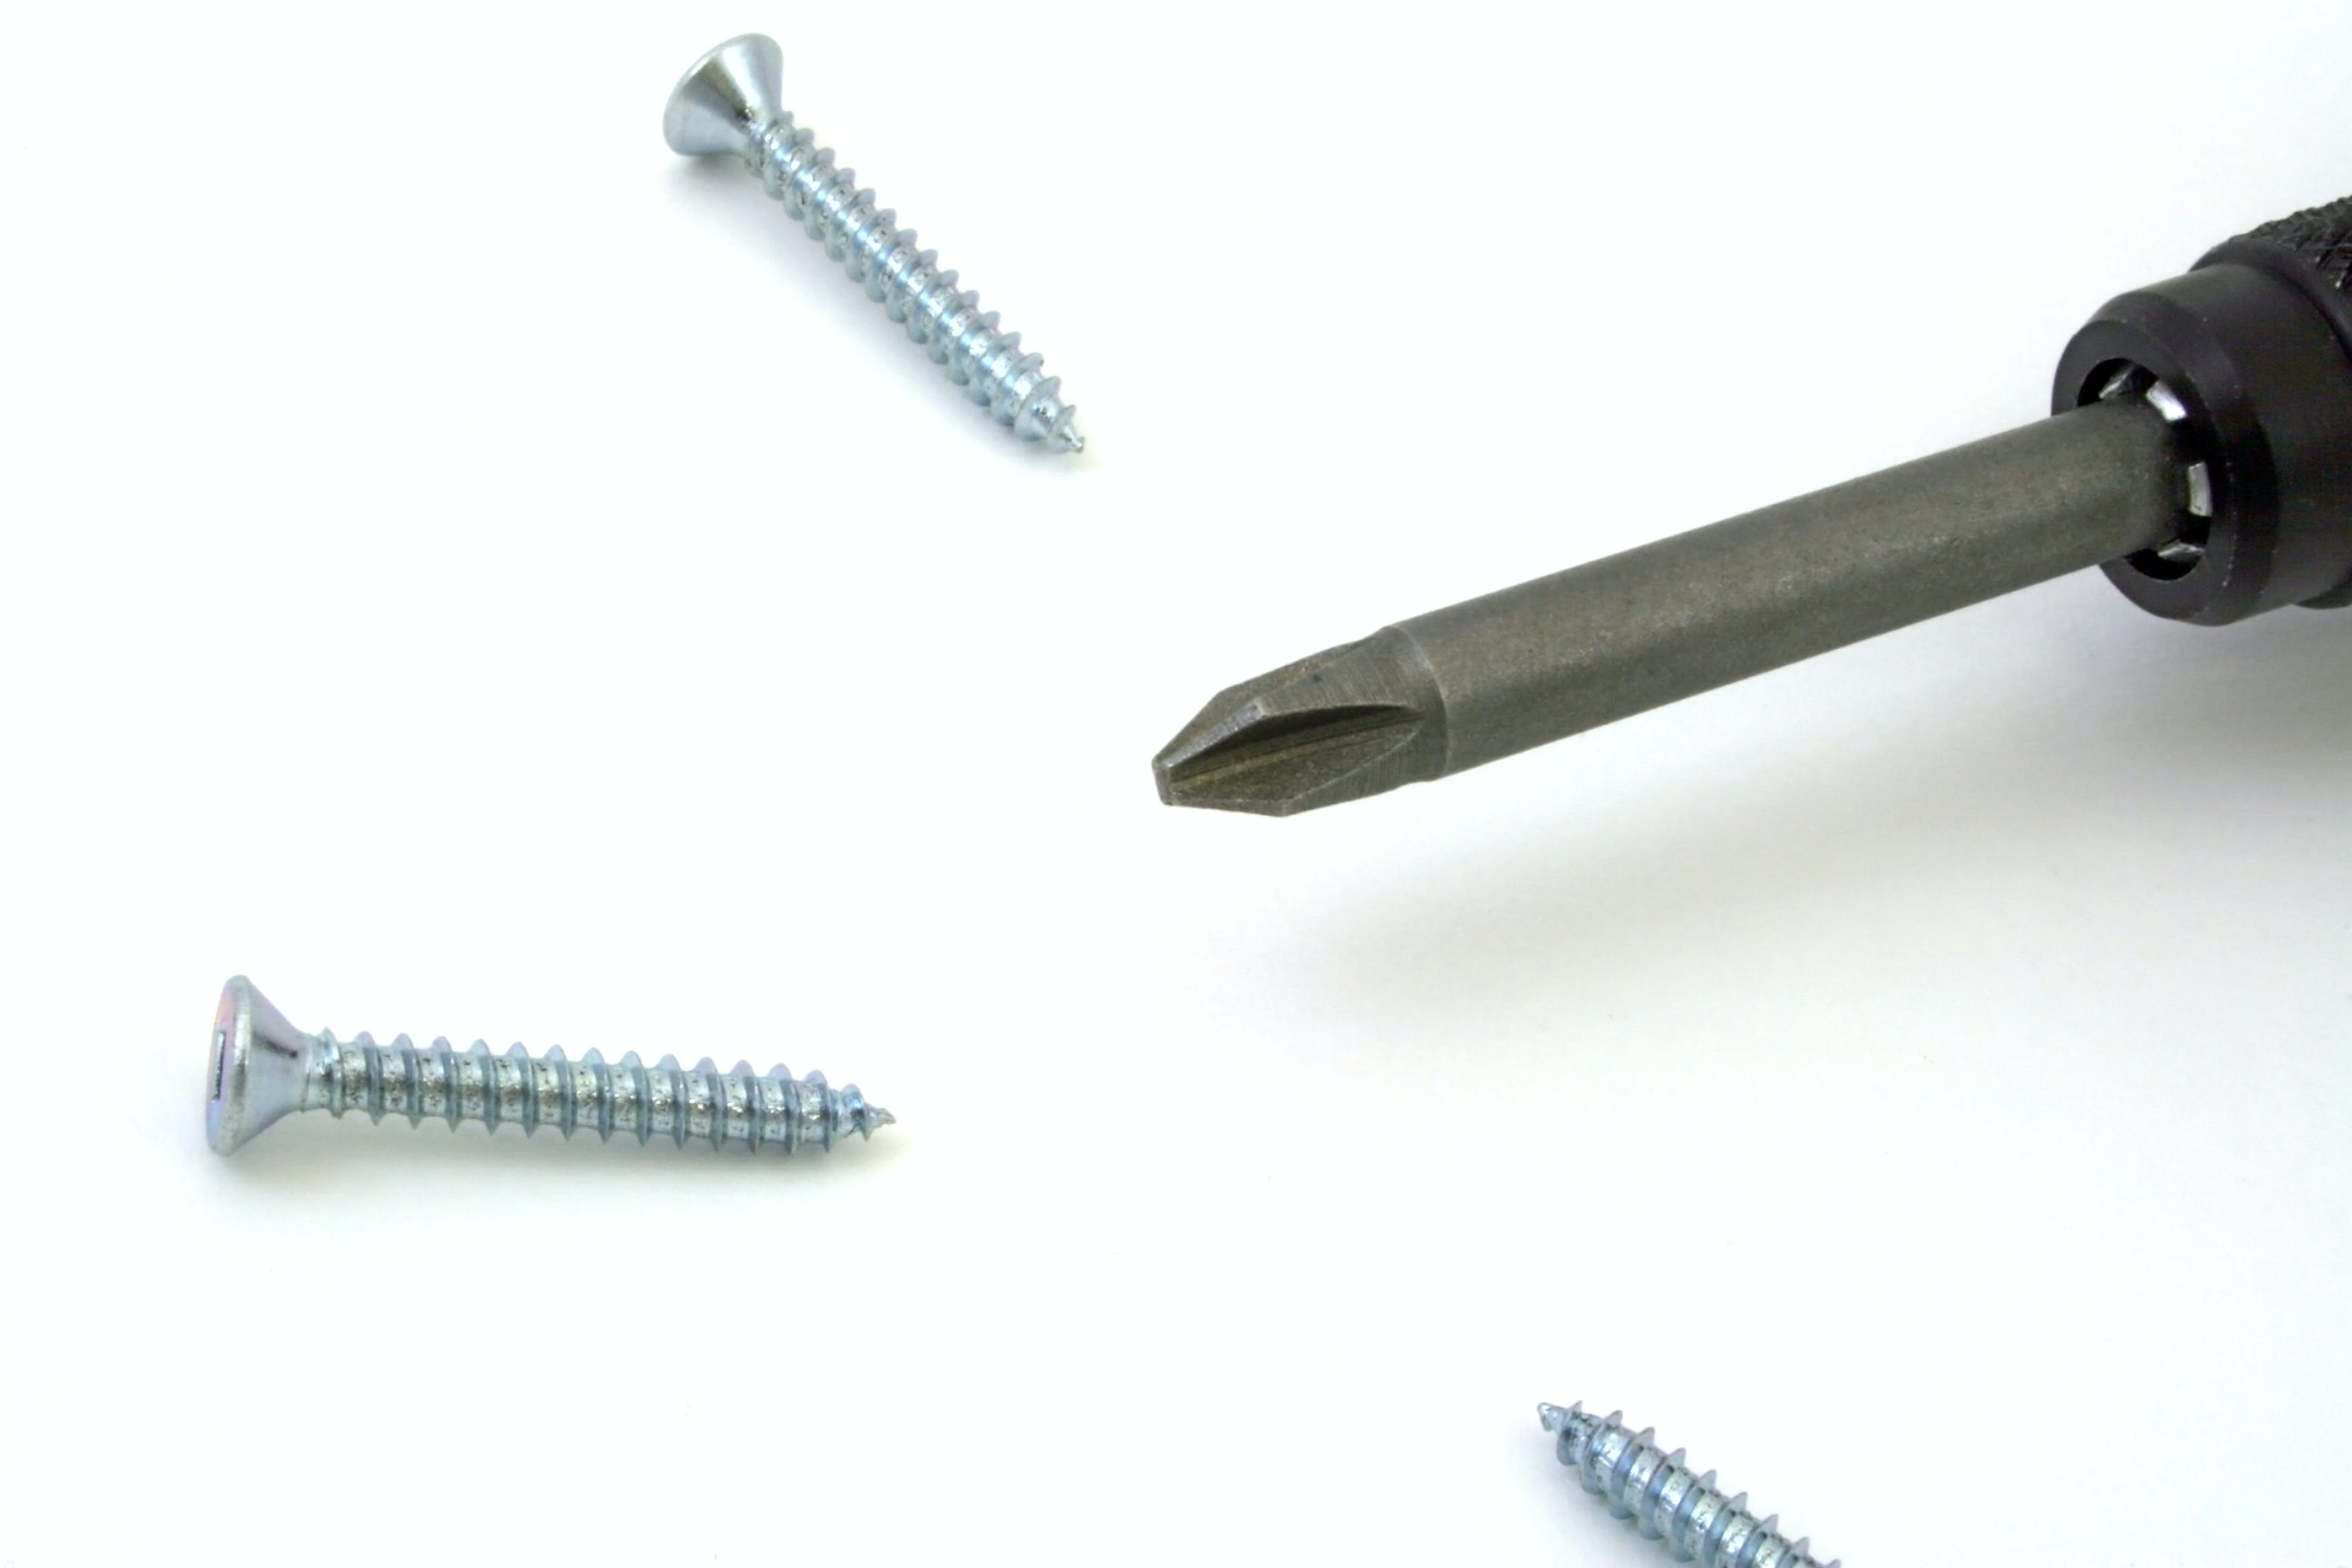 Gray Screw Near Screw Driver